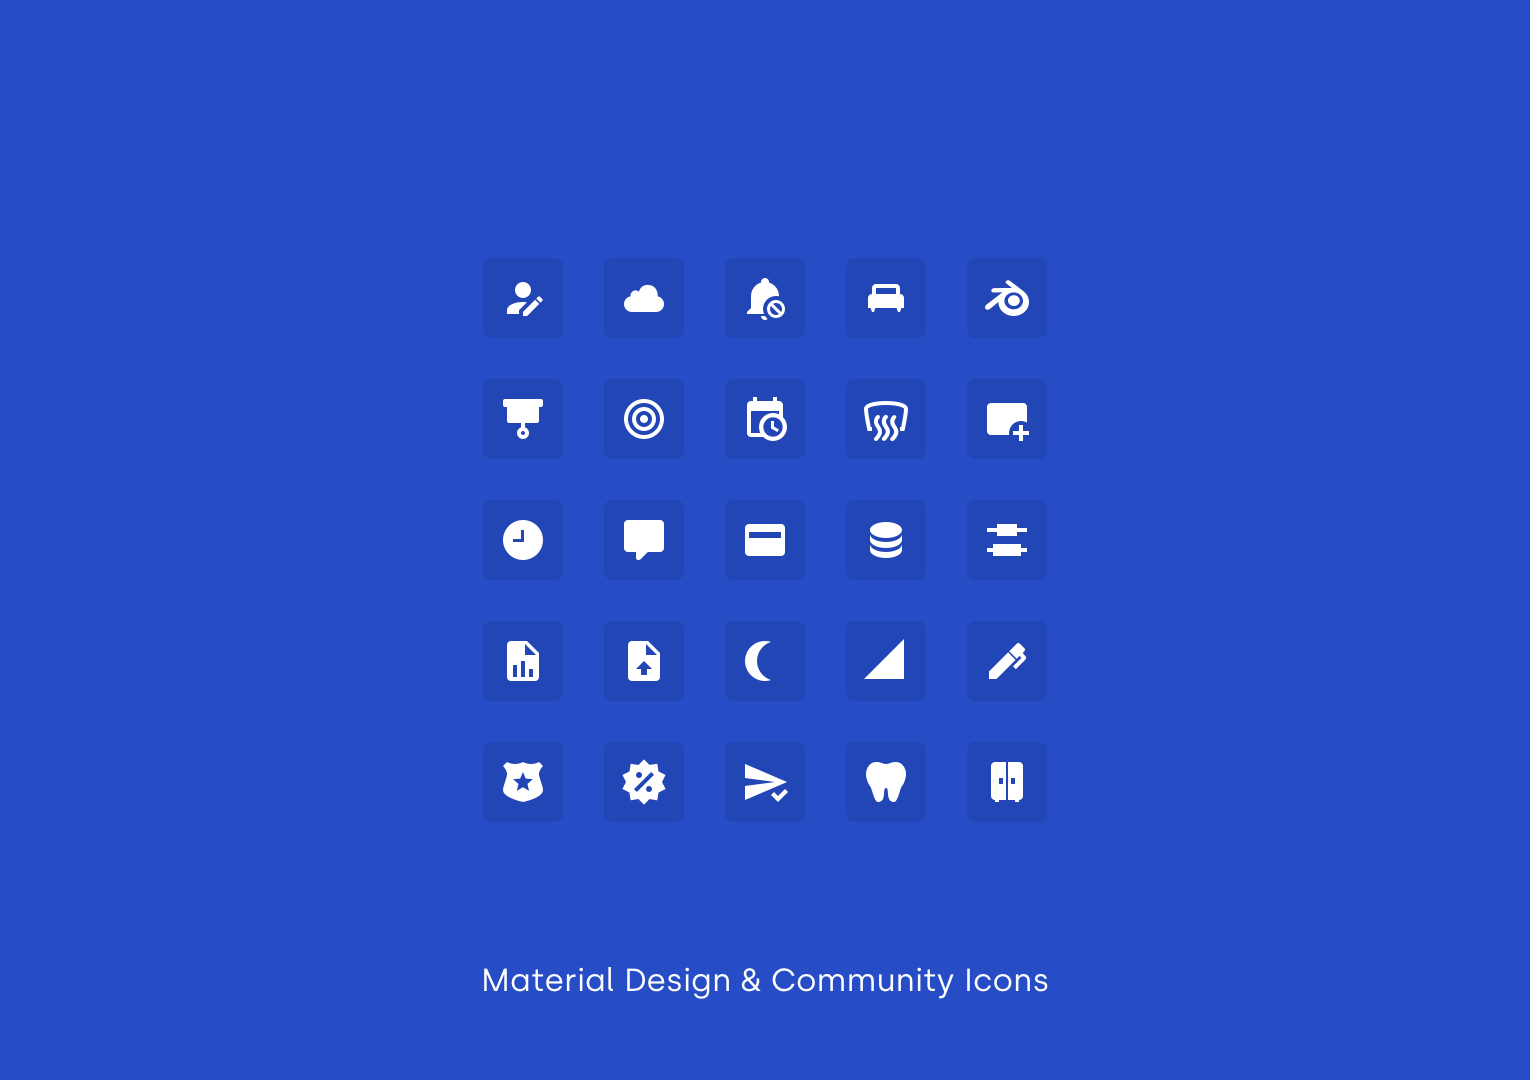 Material Design & Community Icons by Material Design & Community